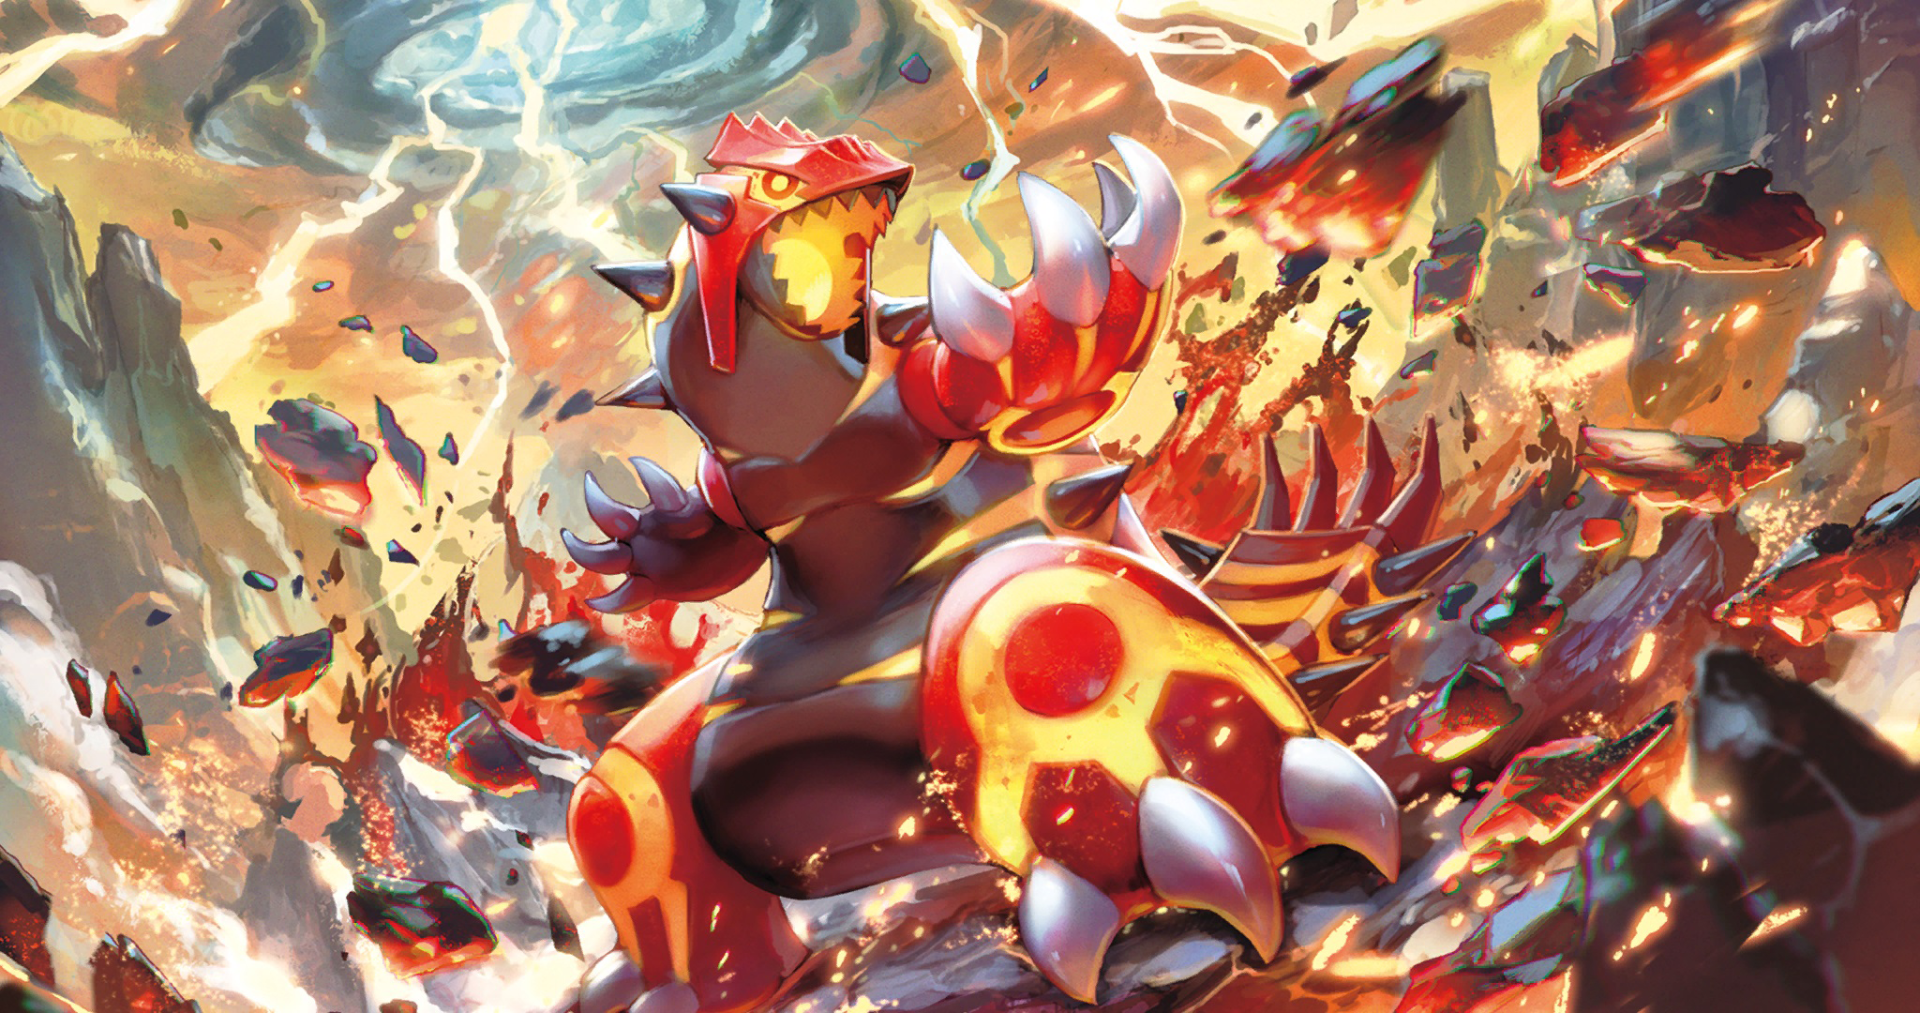 Anime - Pokémon  Primal Groudon (Pokémon) Legendary Pokémon Wallpaper